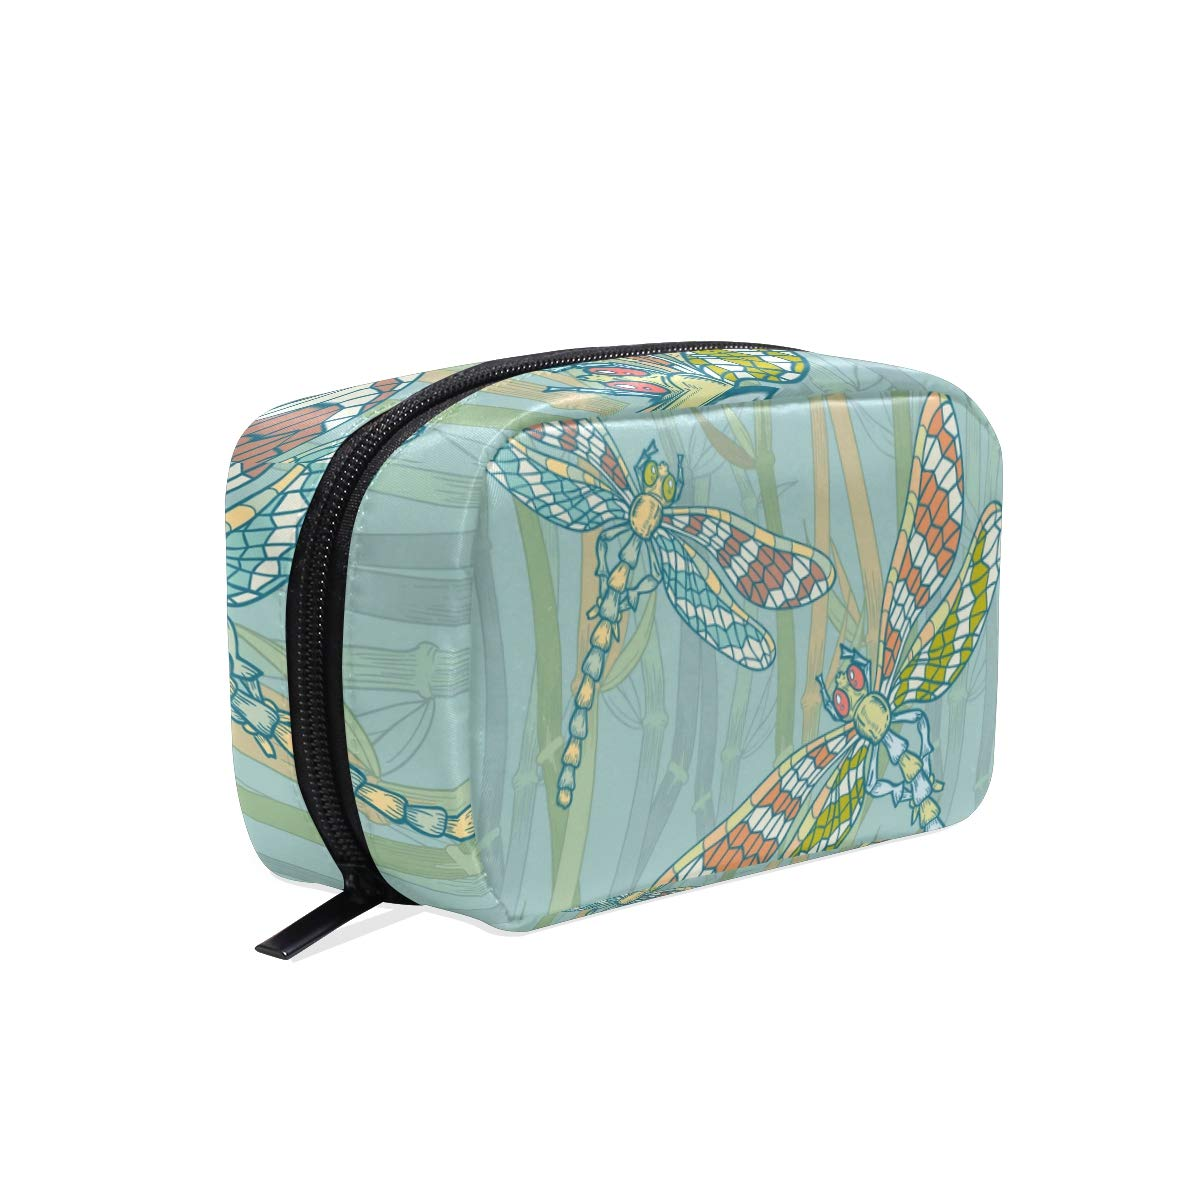 Makeup Bag Portable Travel Cosmetic Bags Dragonfly Water Plant Storage Bag for Women Skincare Makeup Train Case